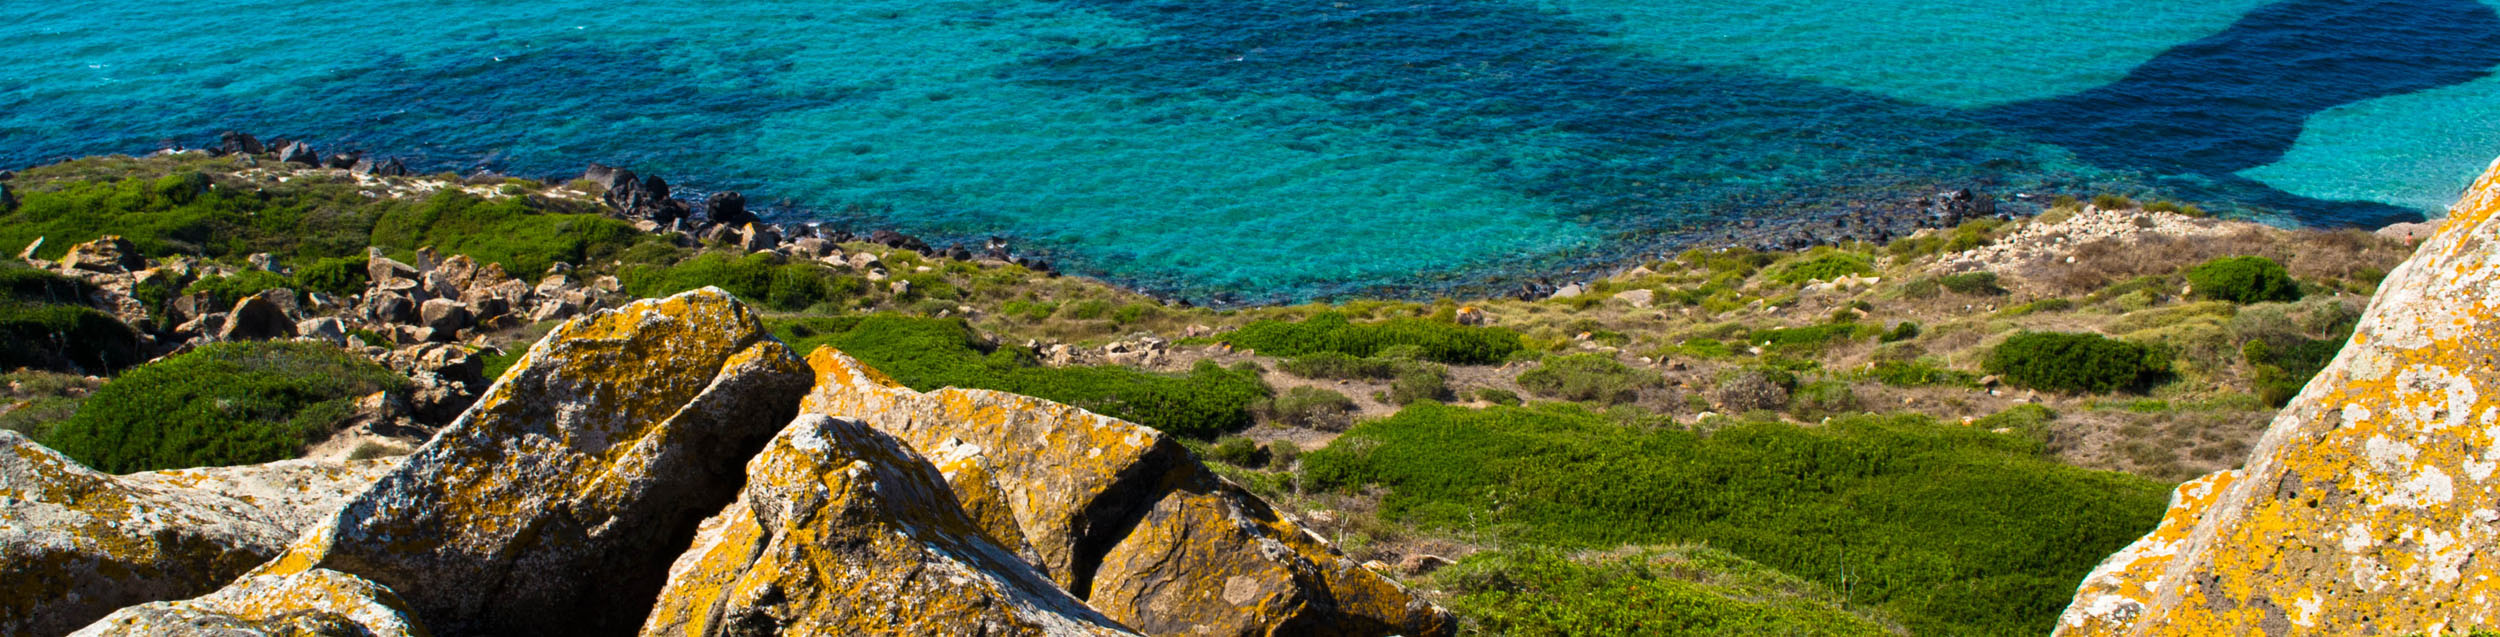 Sardinia: Probably the best island in the world